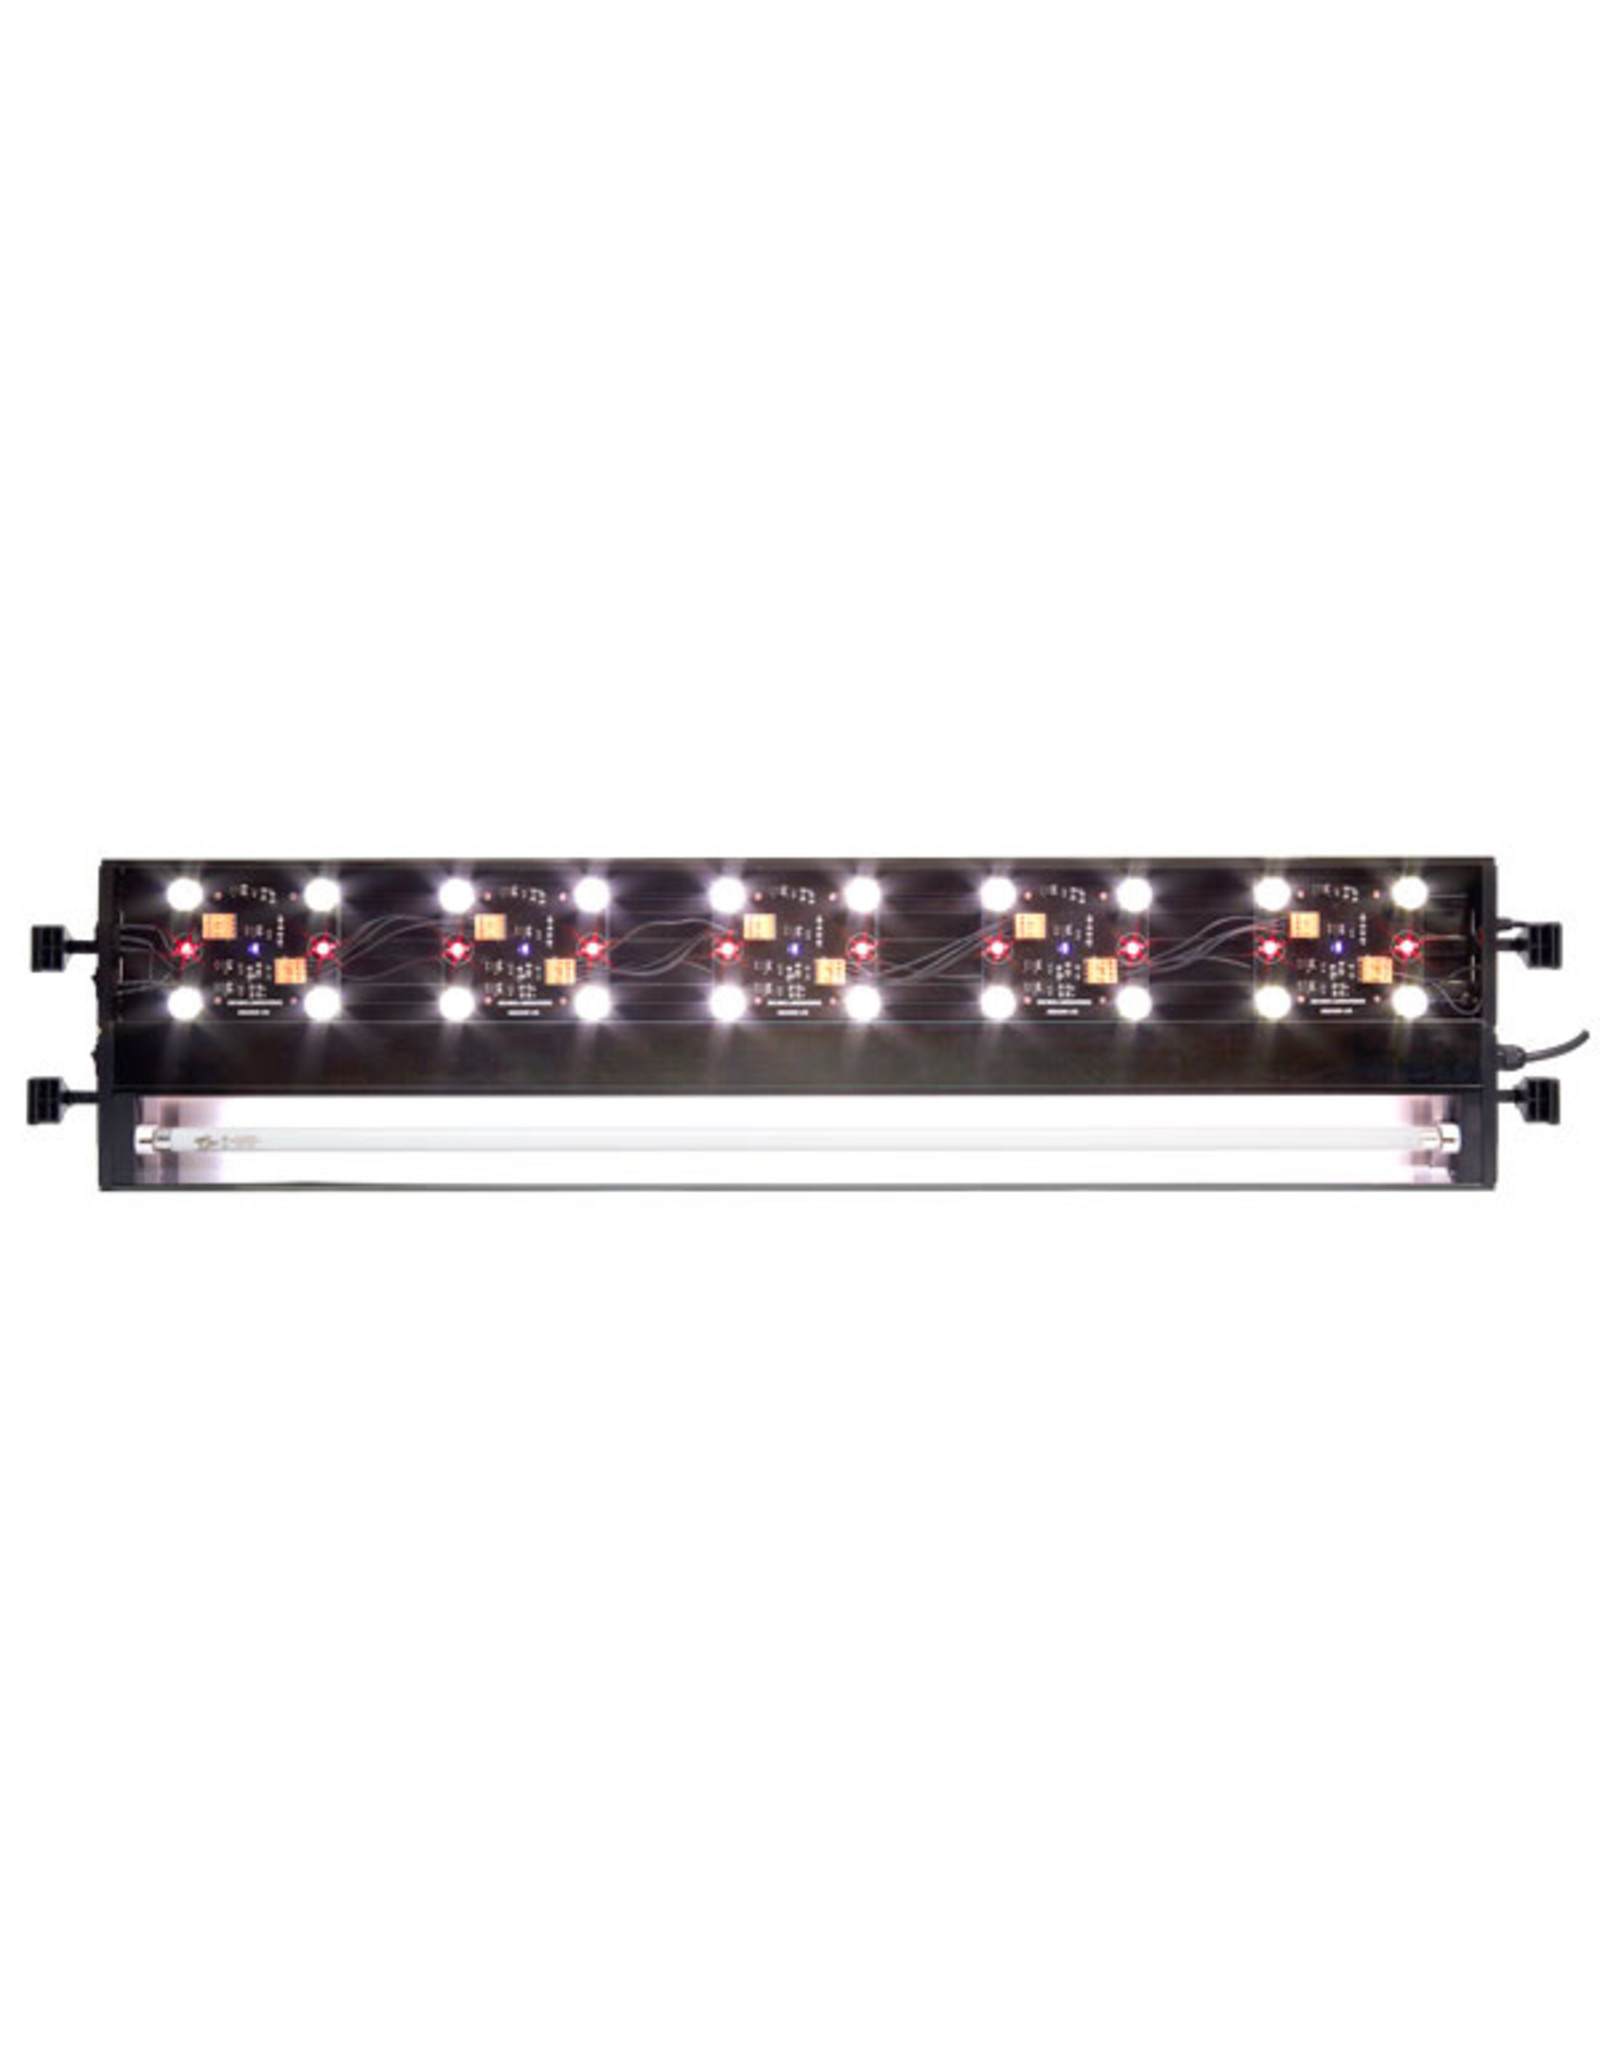 Zoo Med ZOO MED Reptisun LED UVB Fixture